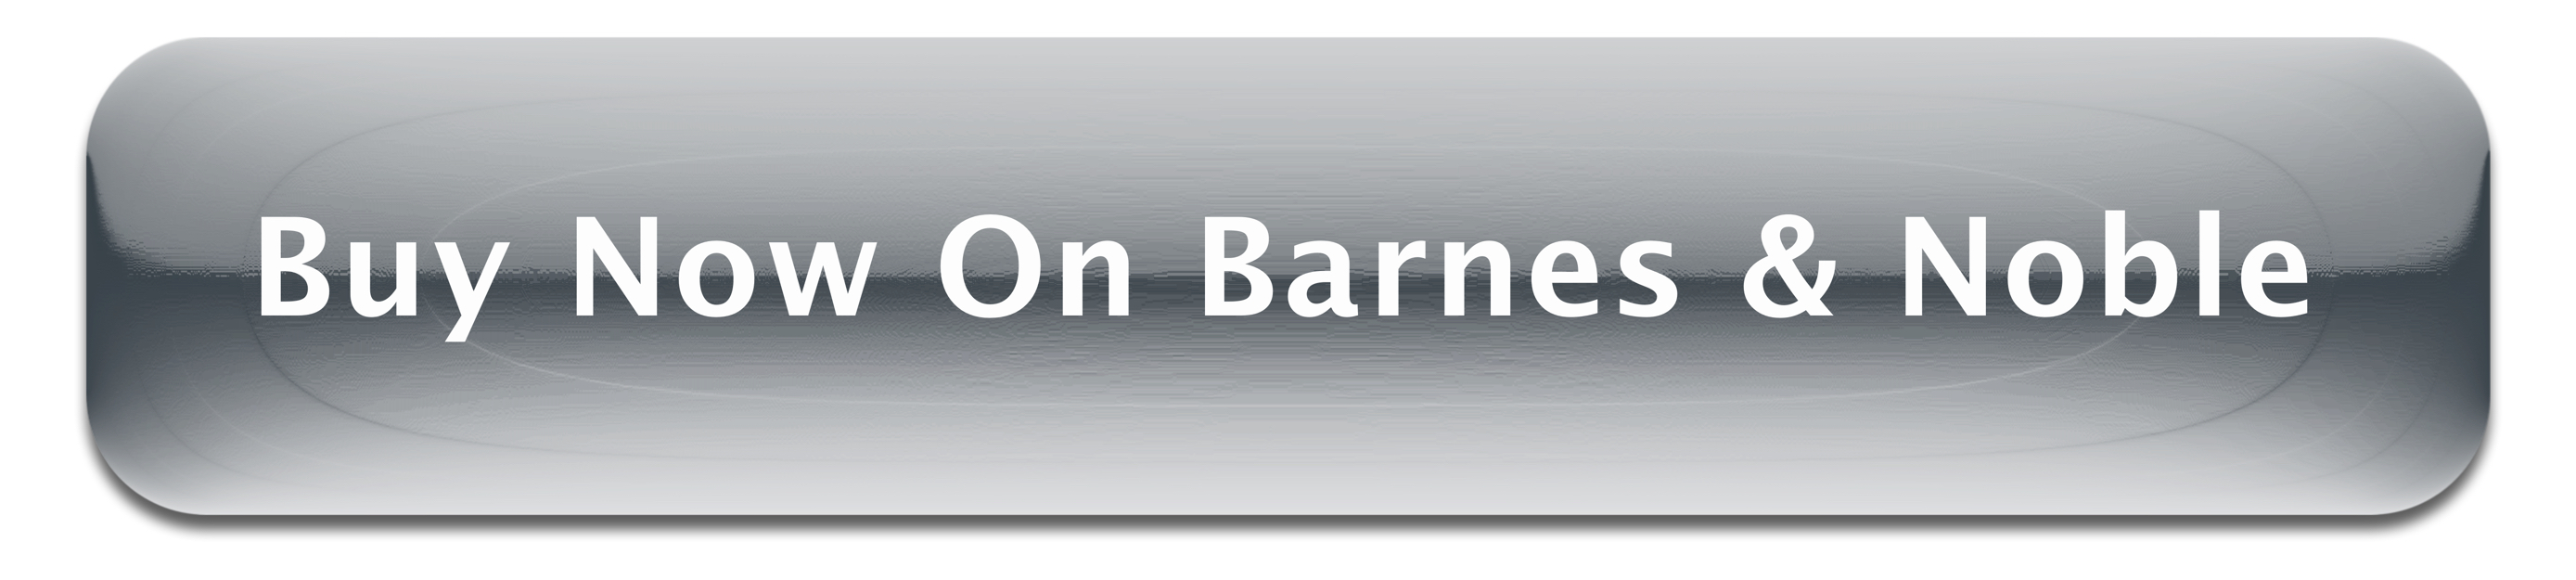 Buy Now Button for Barnes & Noble